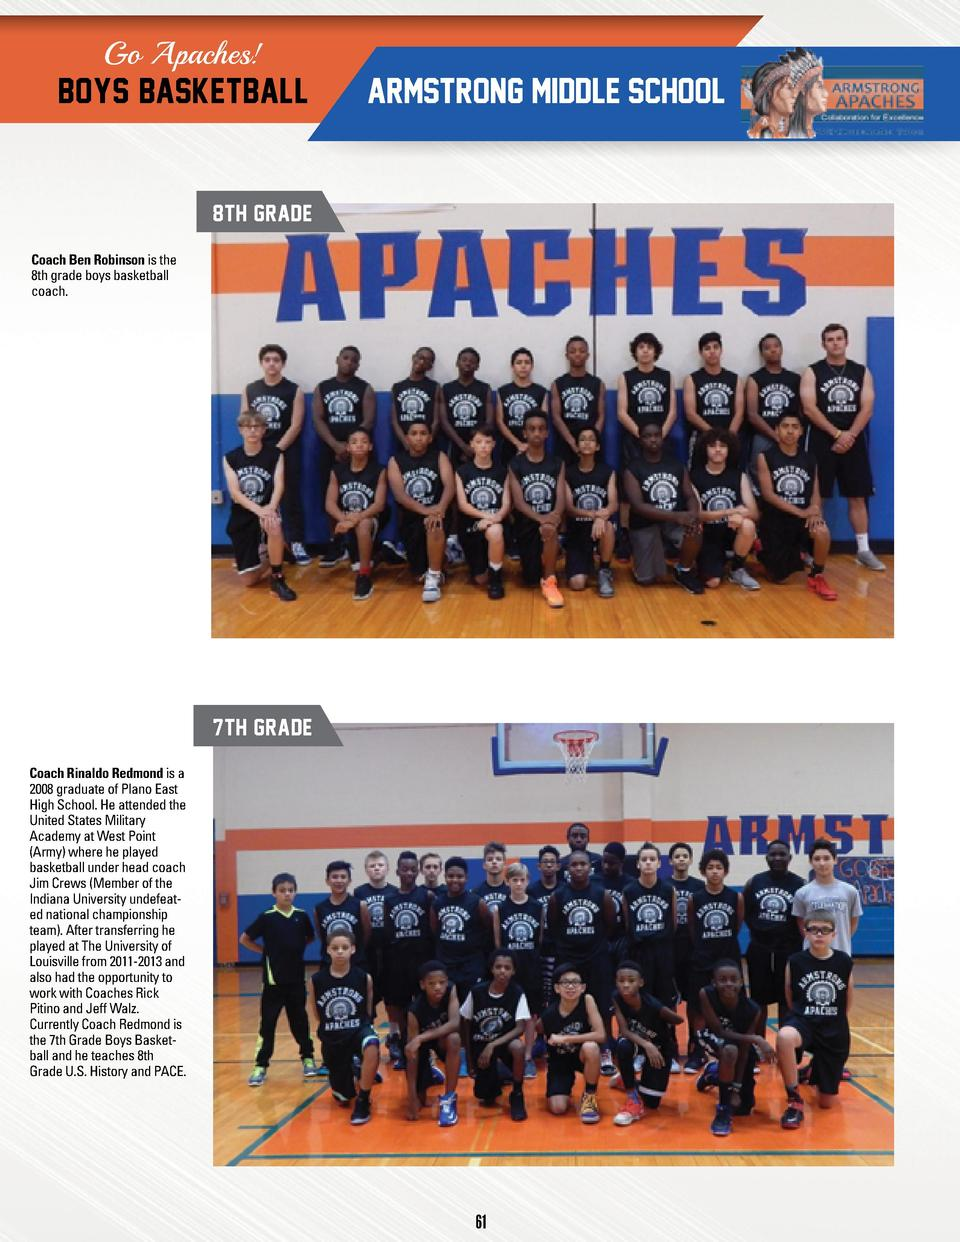 Go Apaches   BOYS BASKETBALL  ARMSTRONG MIDDLE SCHOOL  8TH GRADE Coach Ben Robinson is the 8th grade boys basketball coach...